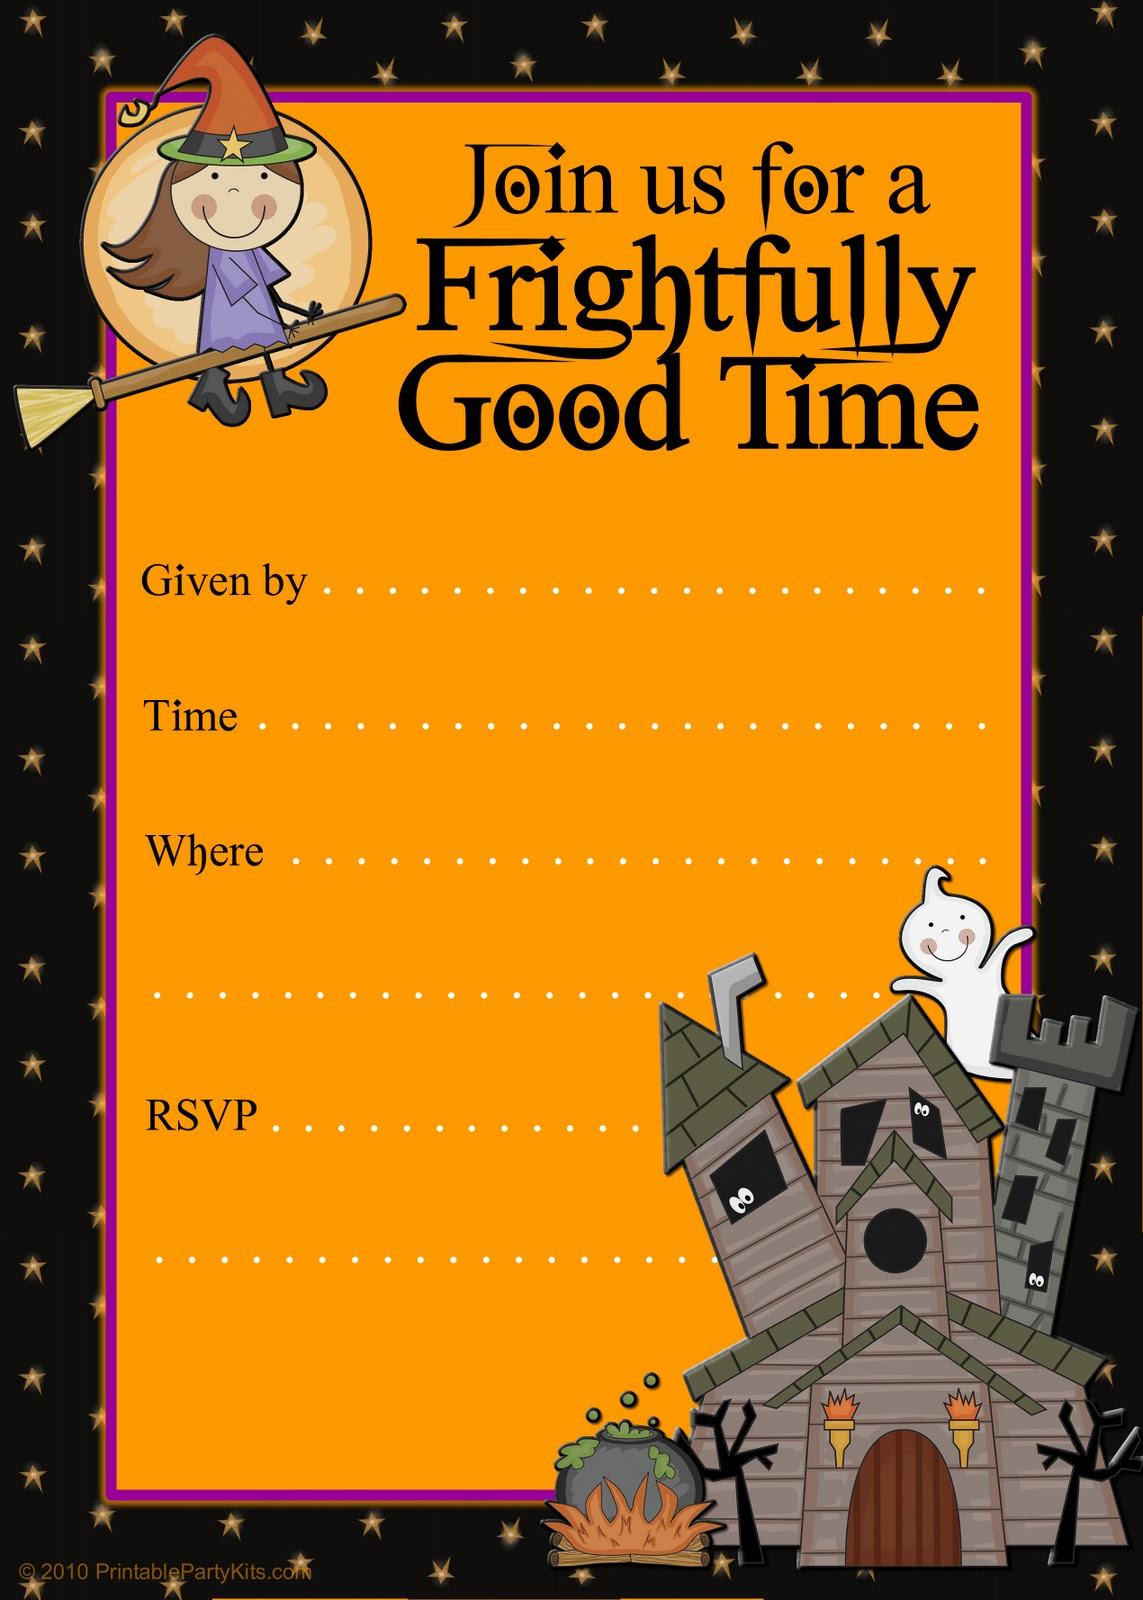 Printable Party Flyers #6D2B047B0C50 - Idealmedia - Free Printable Flyers For Parties